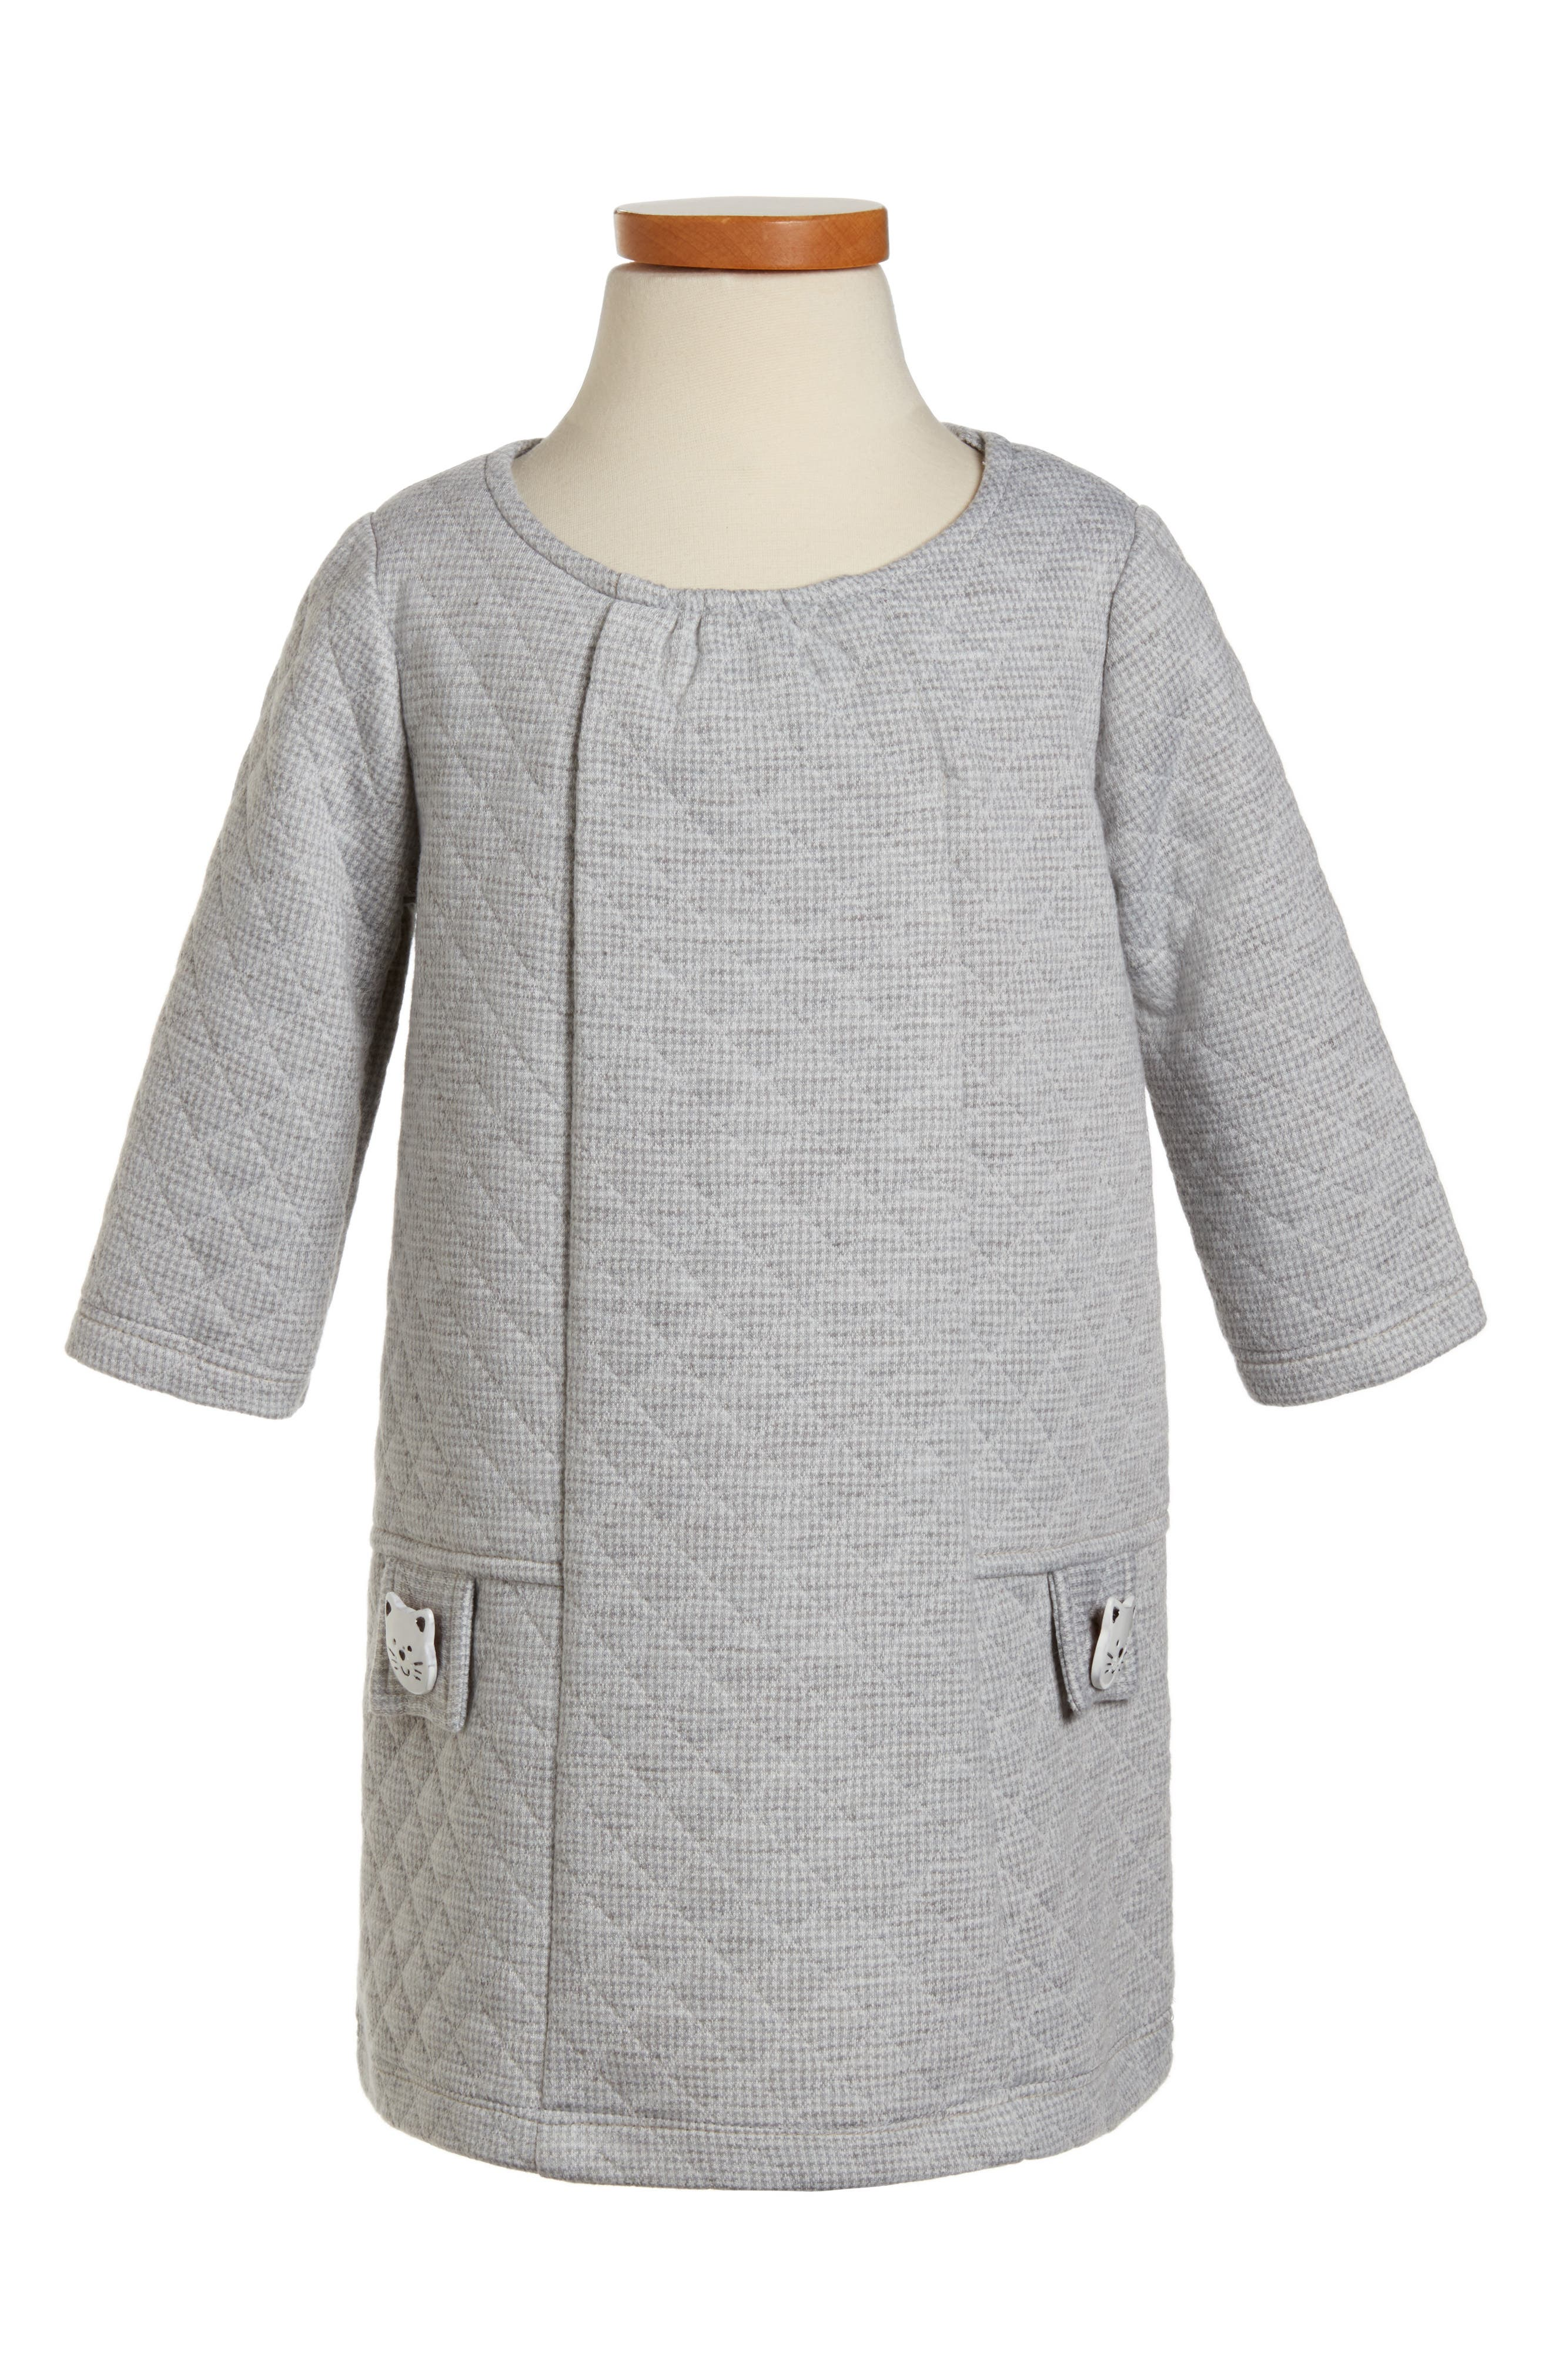 Pippa & Julie Quilted Shift Dress (Toddler Girls & Little Girls)